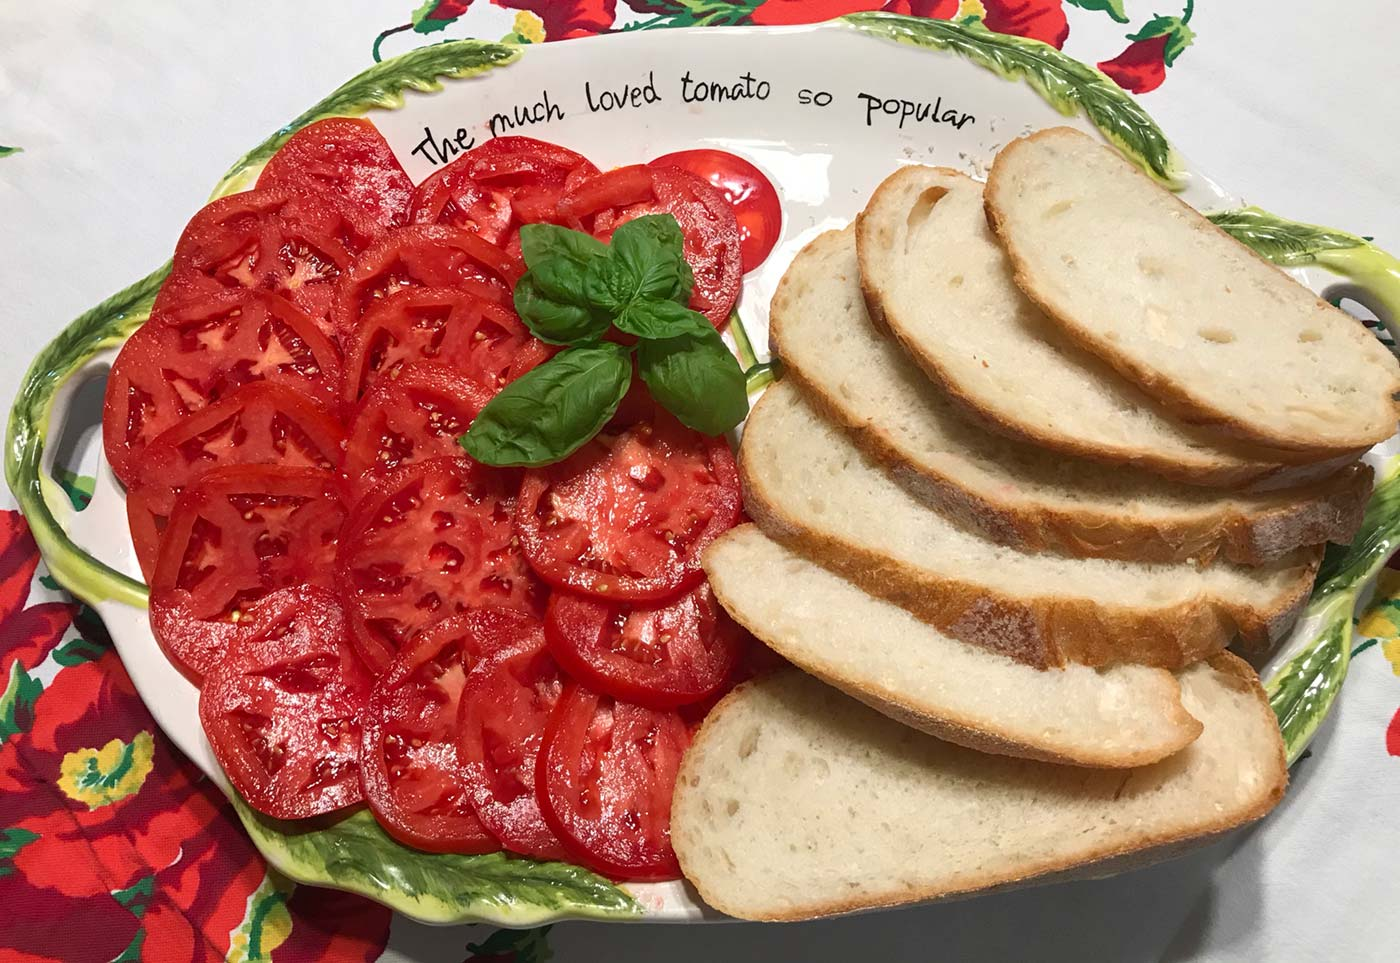 Jersey tomatoes arranged on a plate with bread